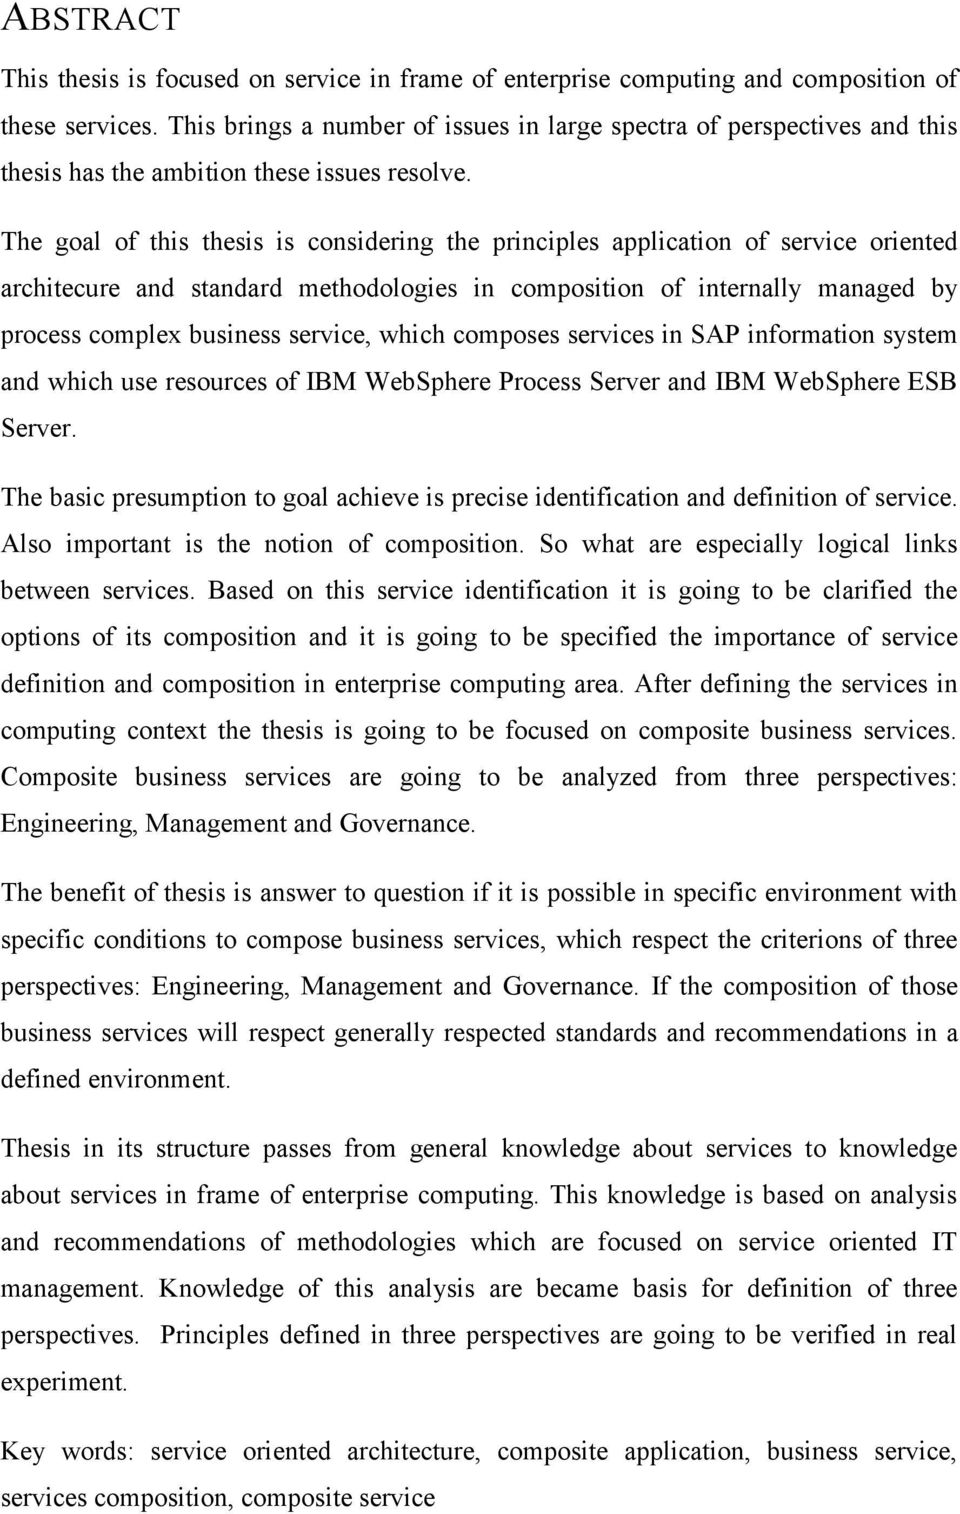 The goal of this thesis is considering the principles application of service oriented architecure and standard methodologies in composition of internally managed by process complex business service,